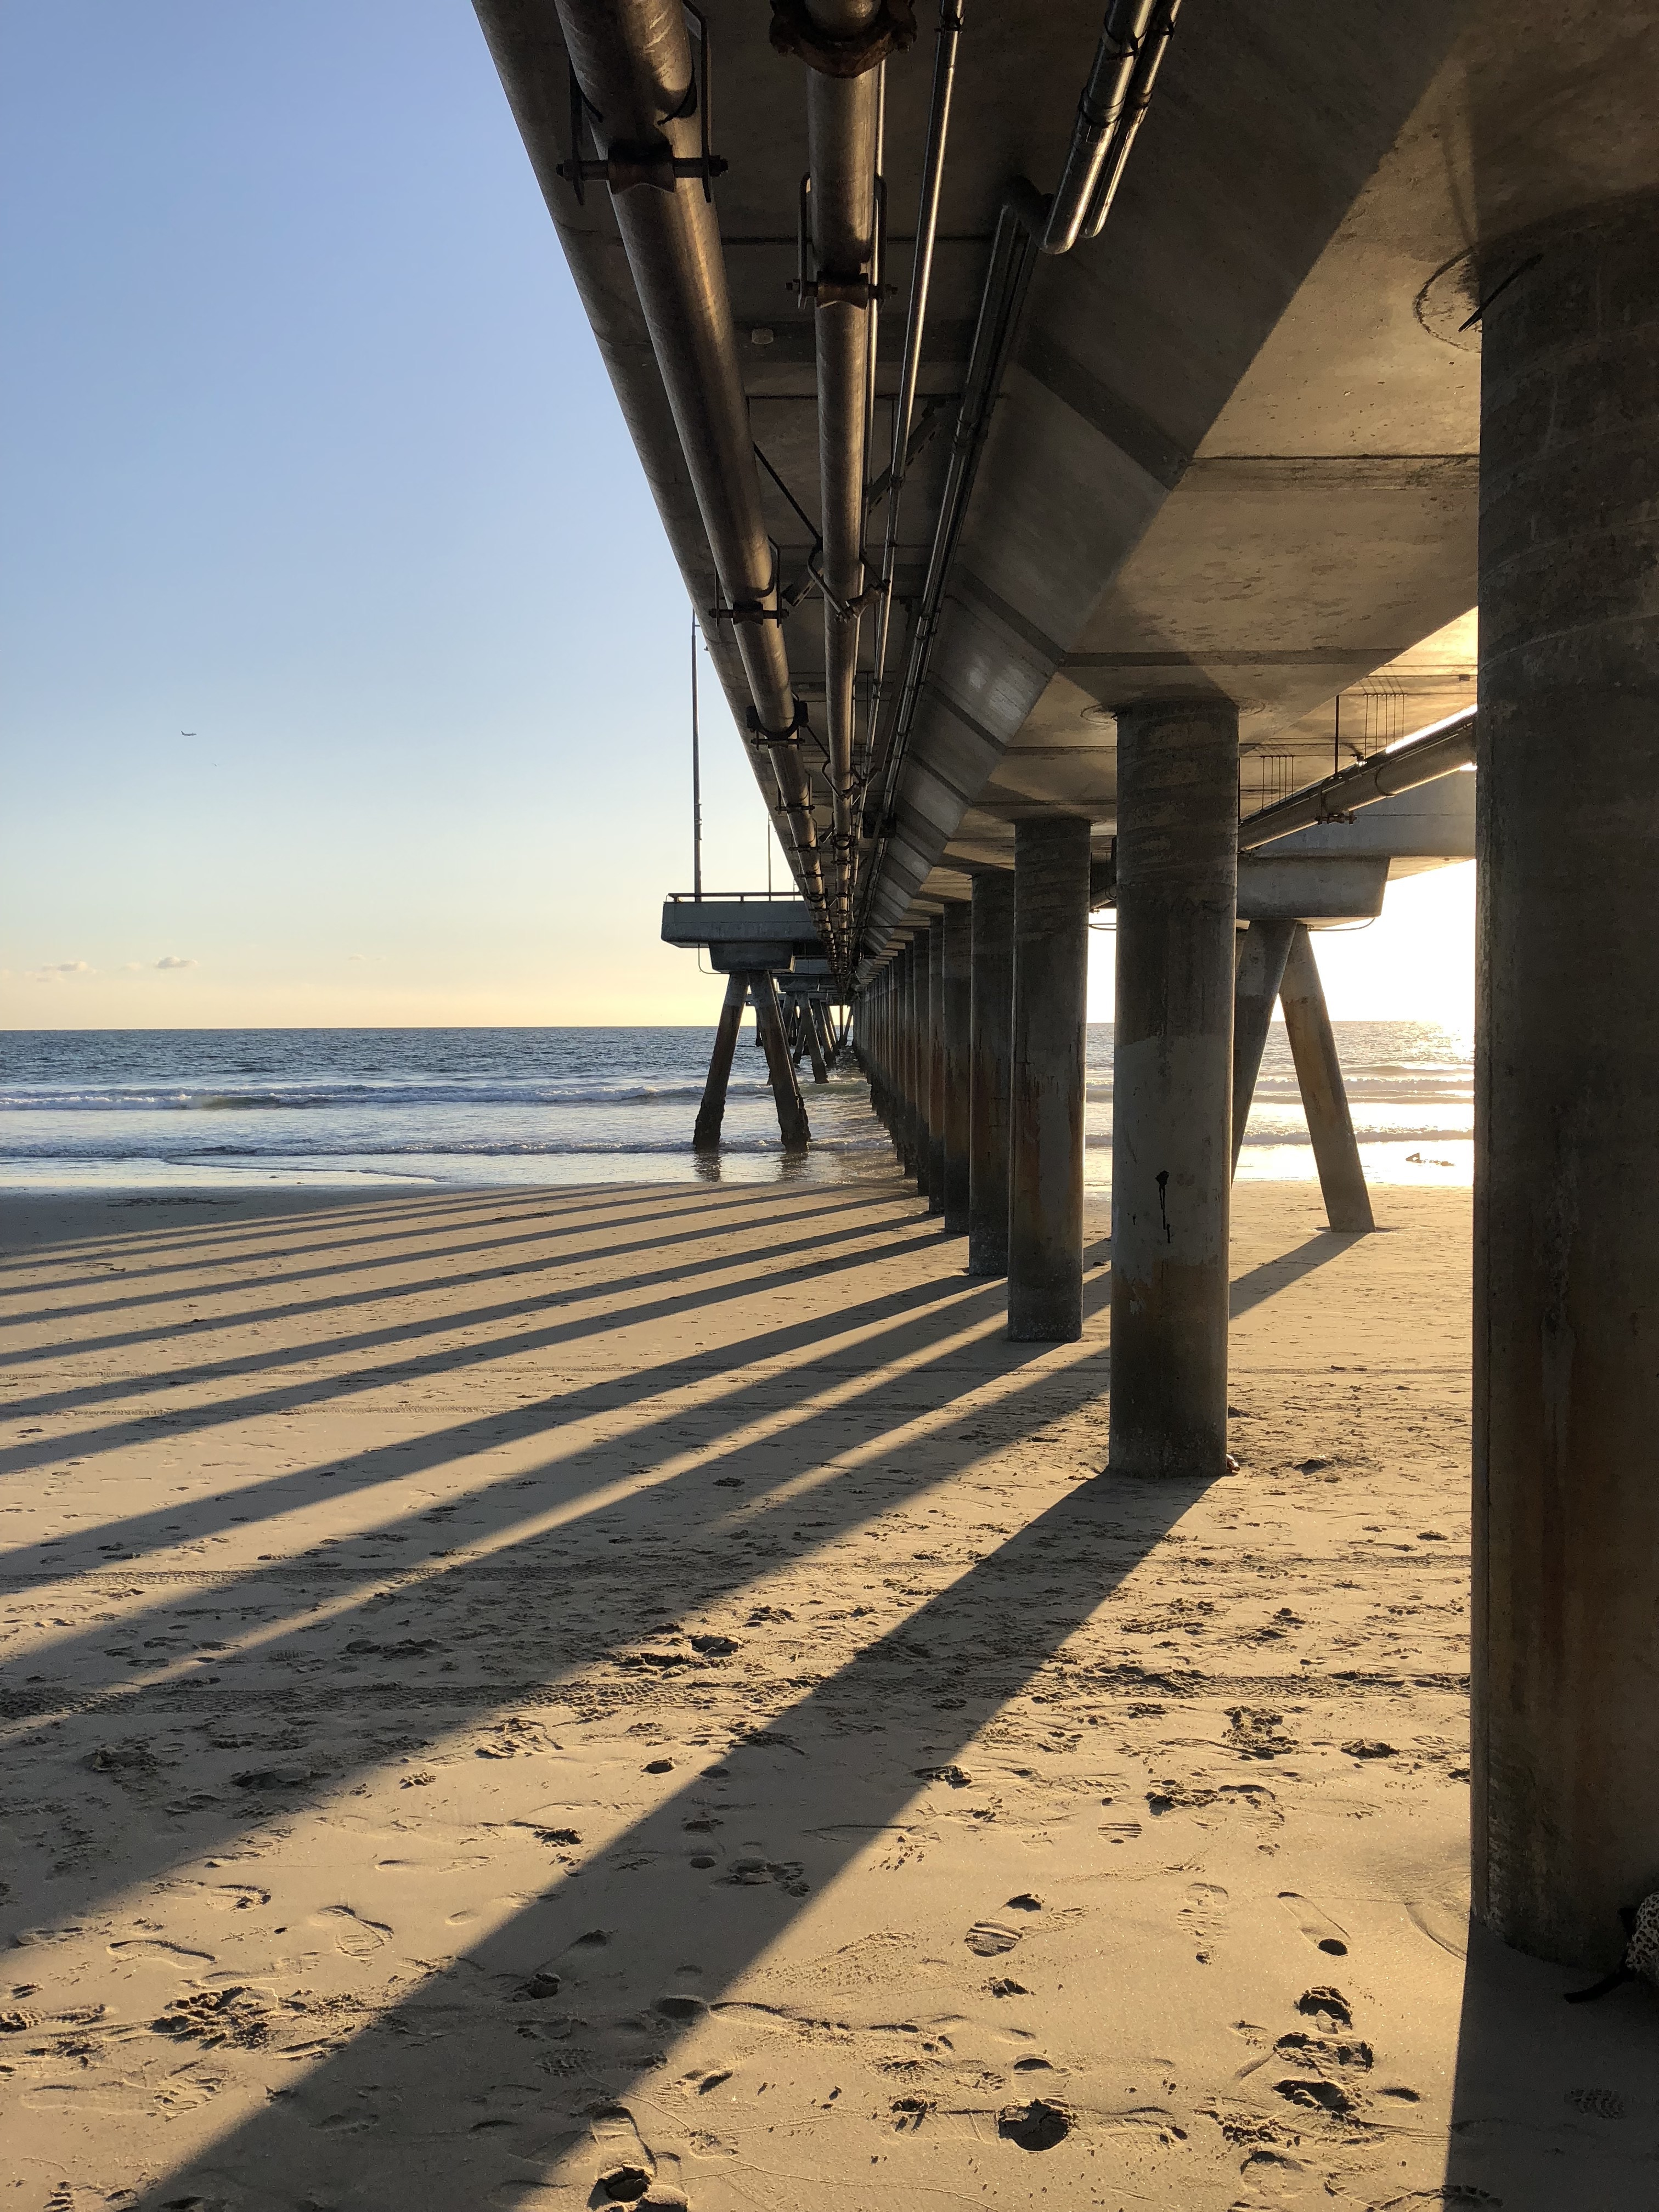 A view from under the Venice Beach pier